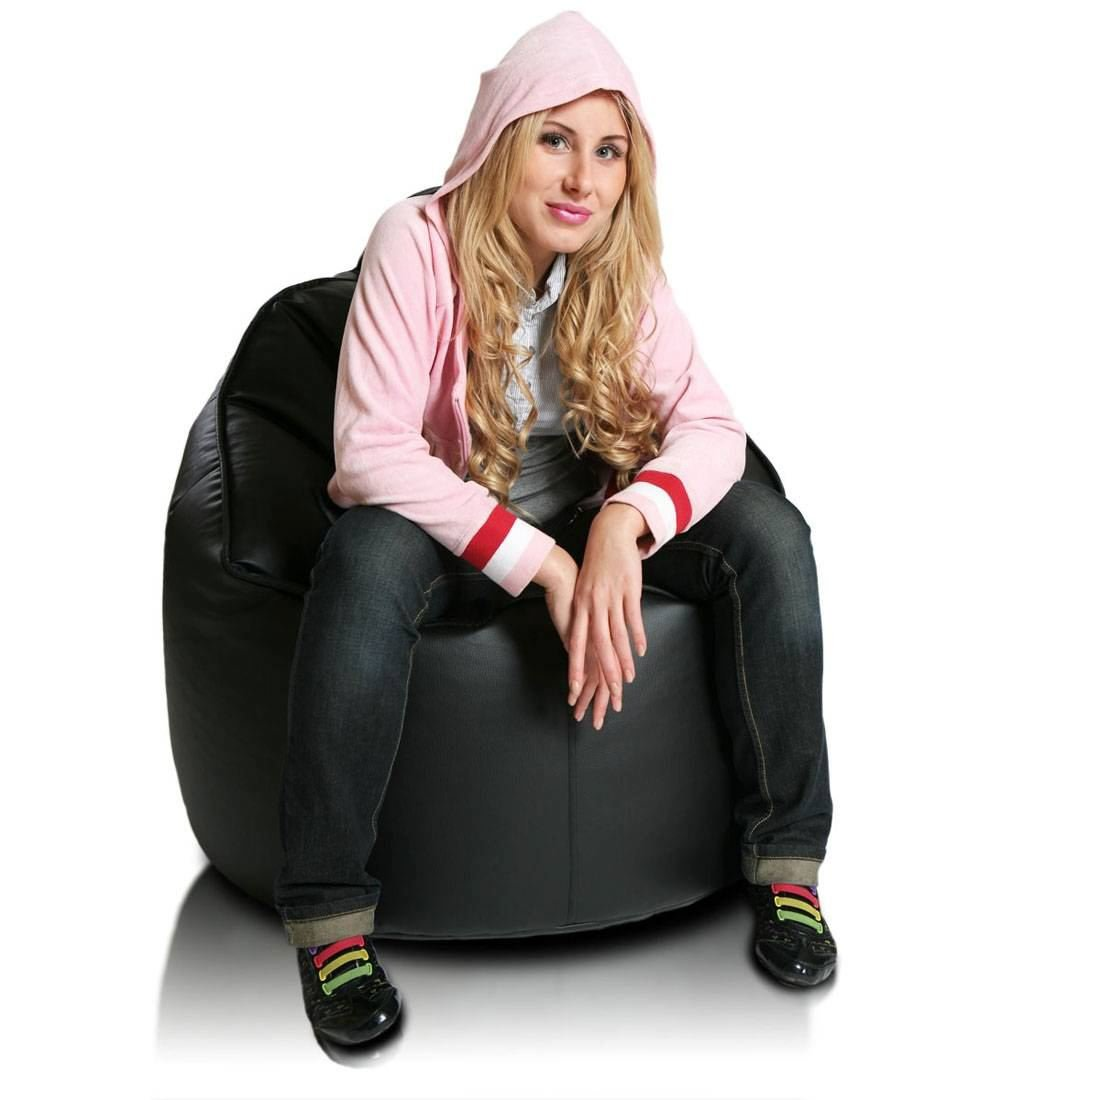 Turbo BeanBags Leader Large Bean Bag Chair, Medium, Black